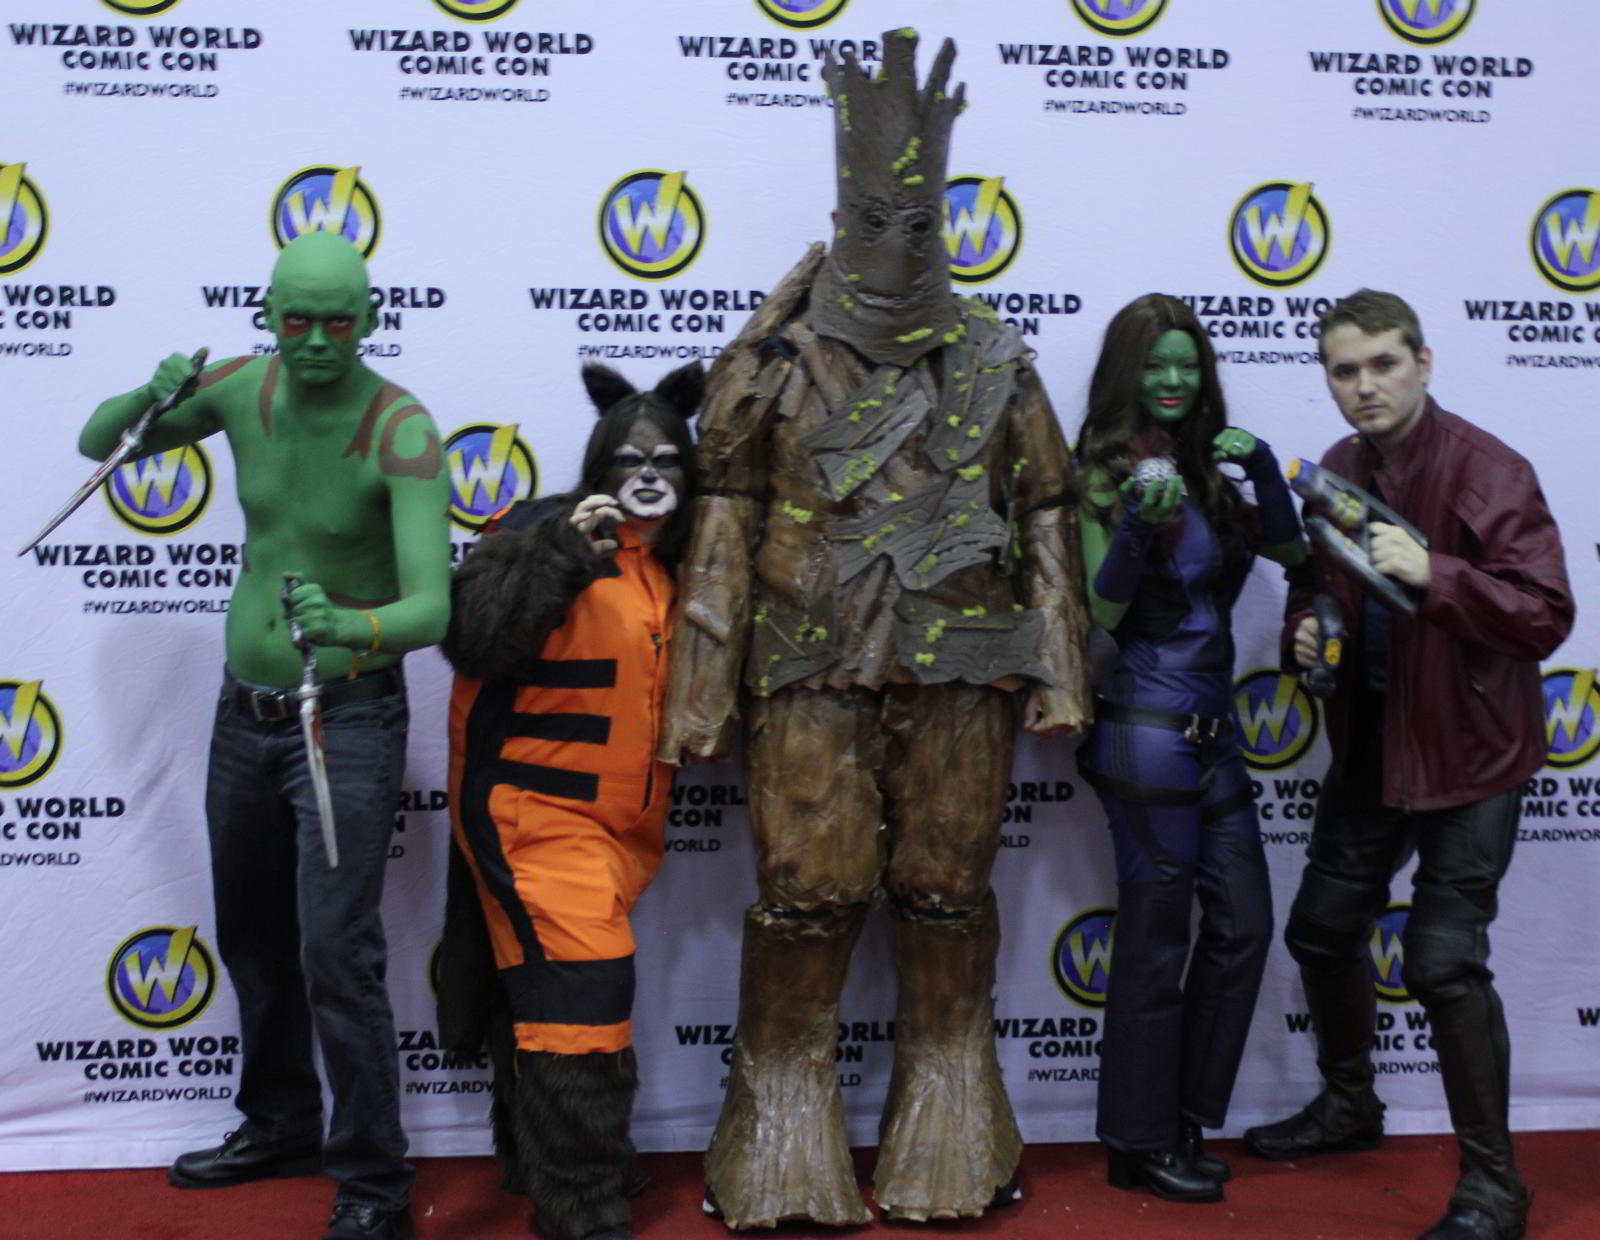 wizard world comic con 37